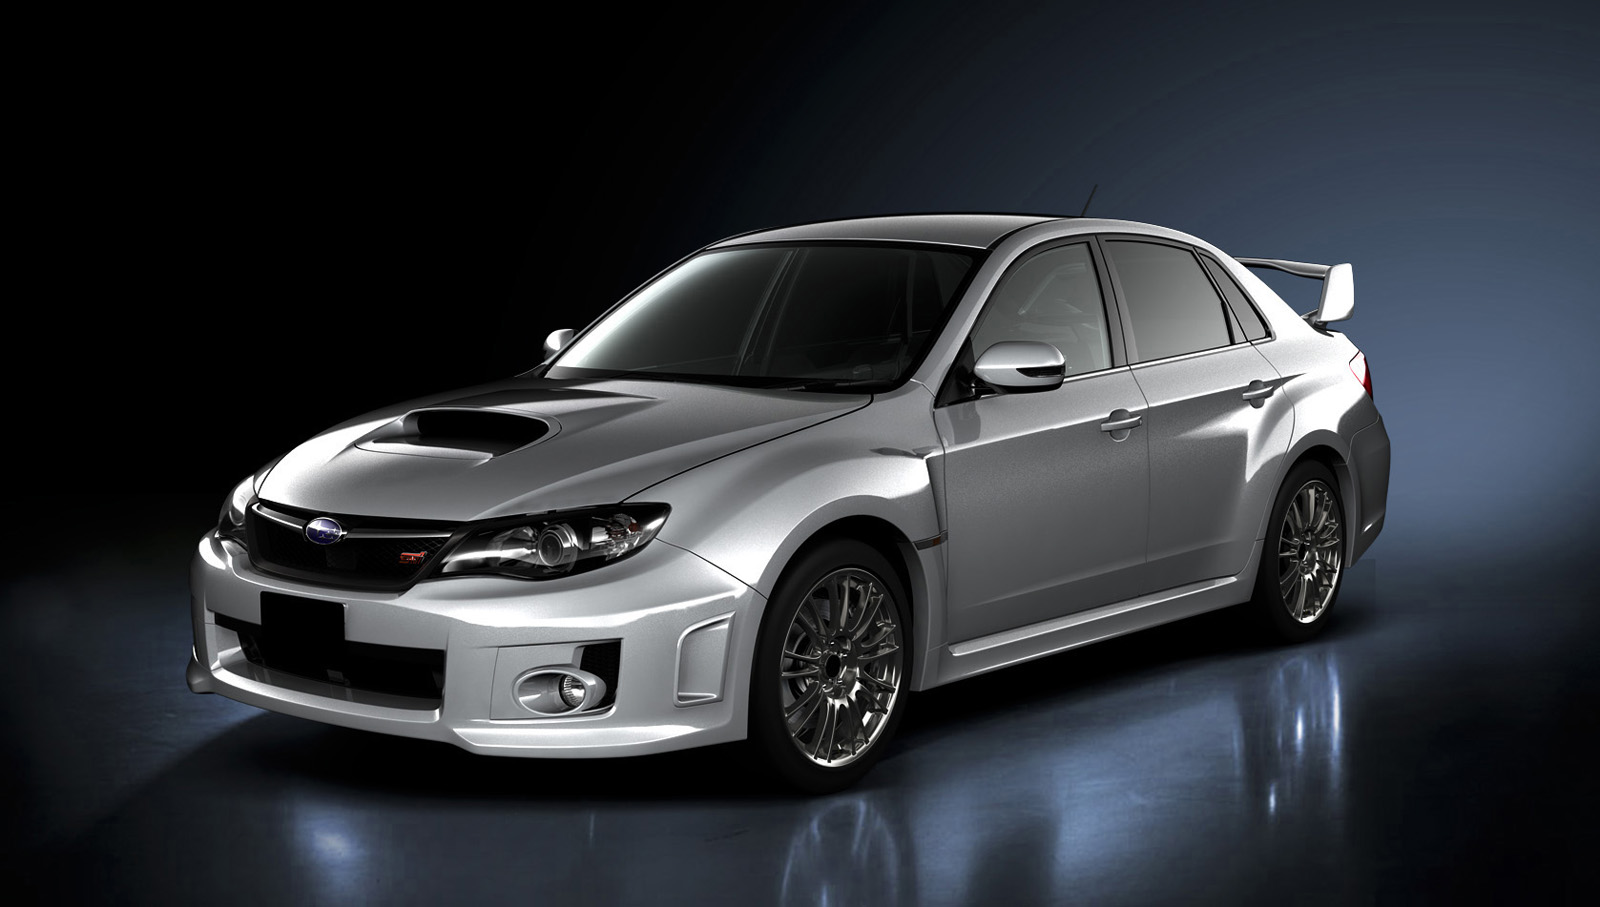 2011 subaru impreza wrx sti automatic photos 1 of 31. Black Bedroom Furniture Sets. Home Design Ideas